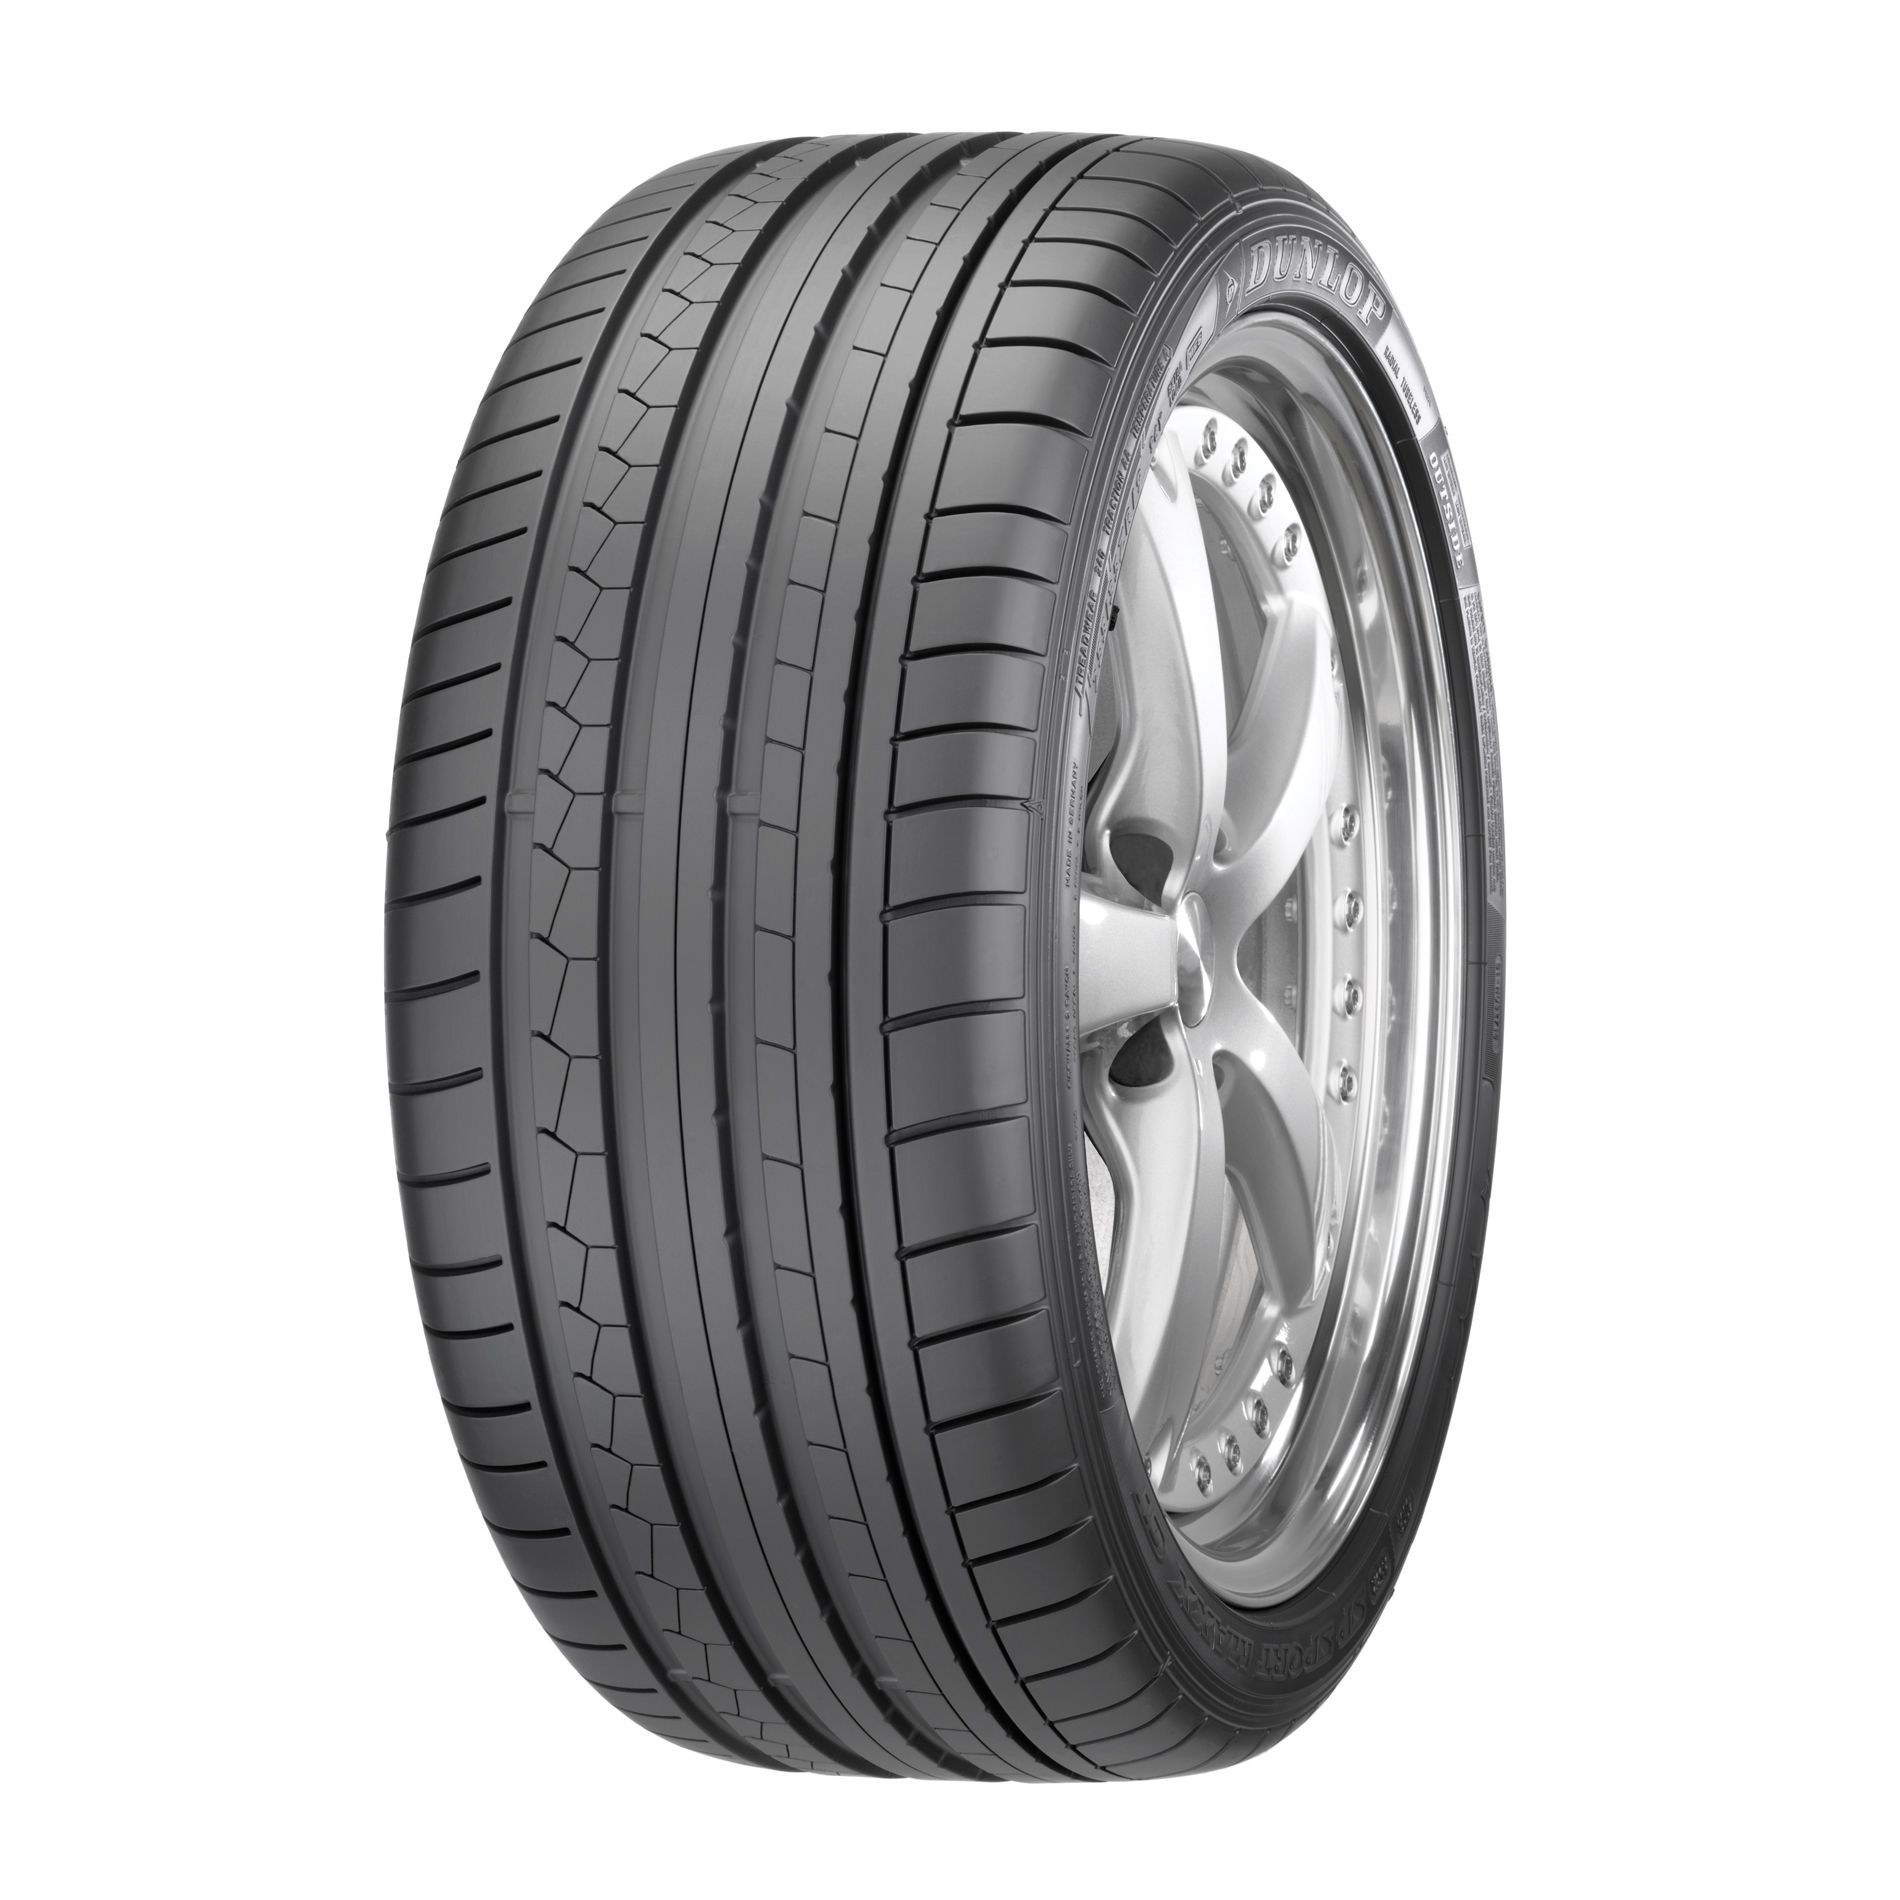 Dunlop Sp Sport Maxx Gt Tire 265 35r19 102y Bw 325 30 20 Review Buy Now